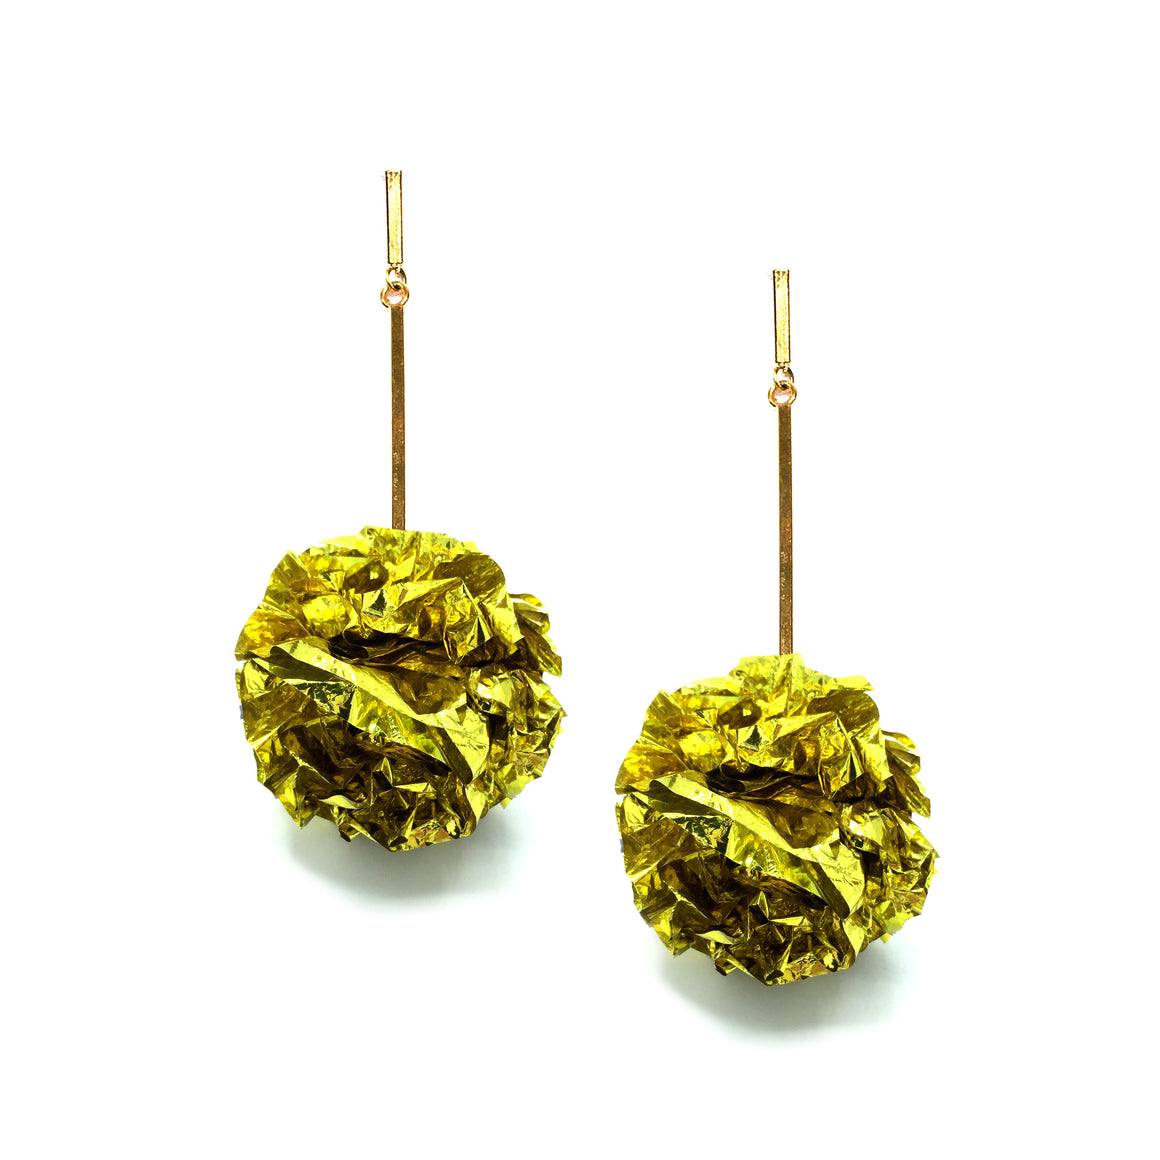 "2"" Gold Foil Pom Pom Earrings, Earrings, Tuleste, Tuleste"